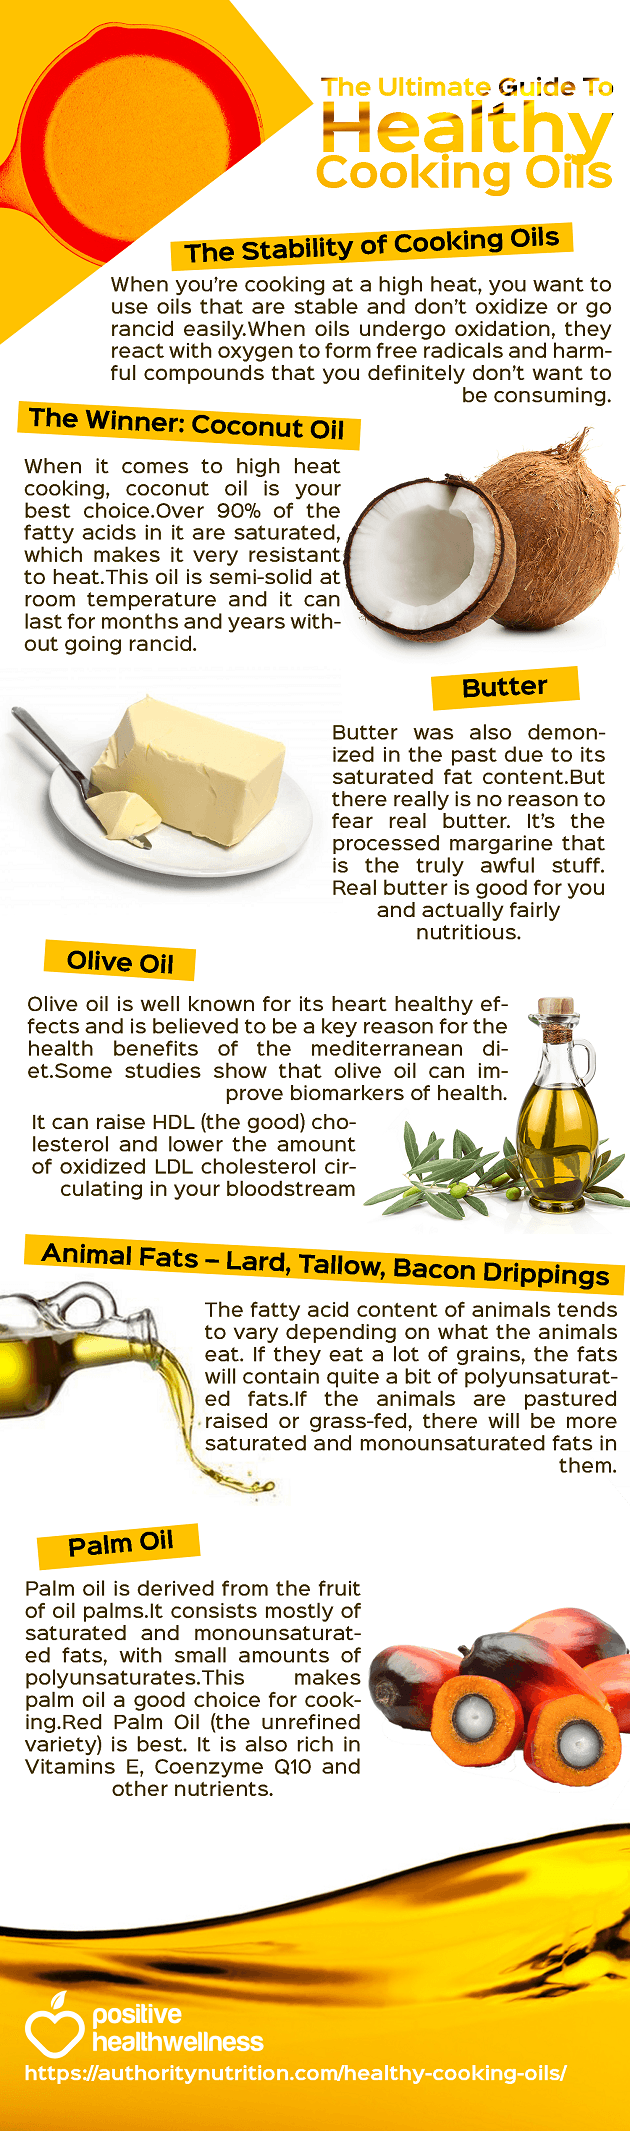 The Ultimate Guide To Healthy Cooking Oils